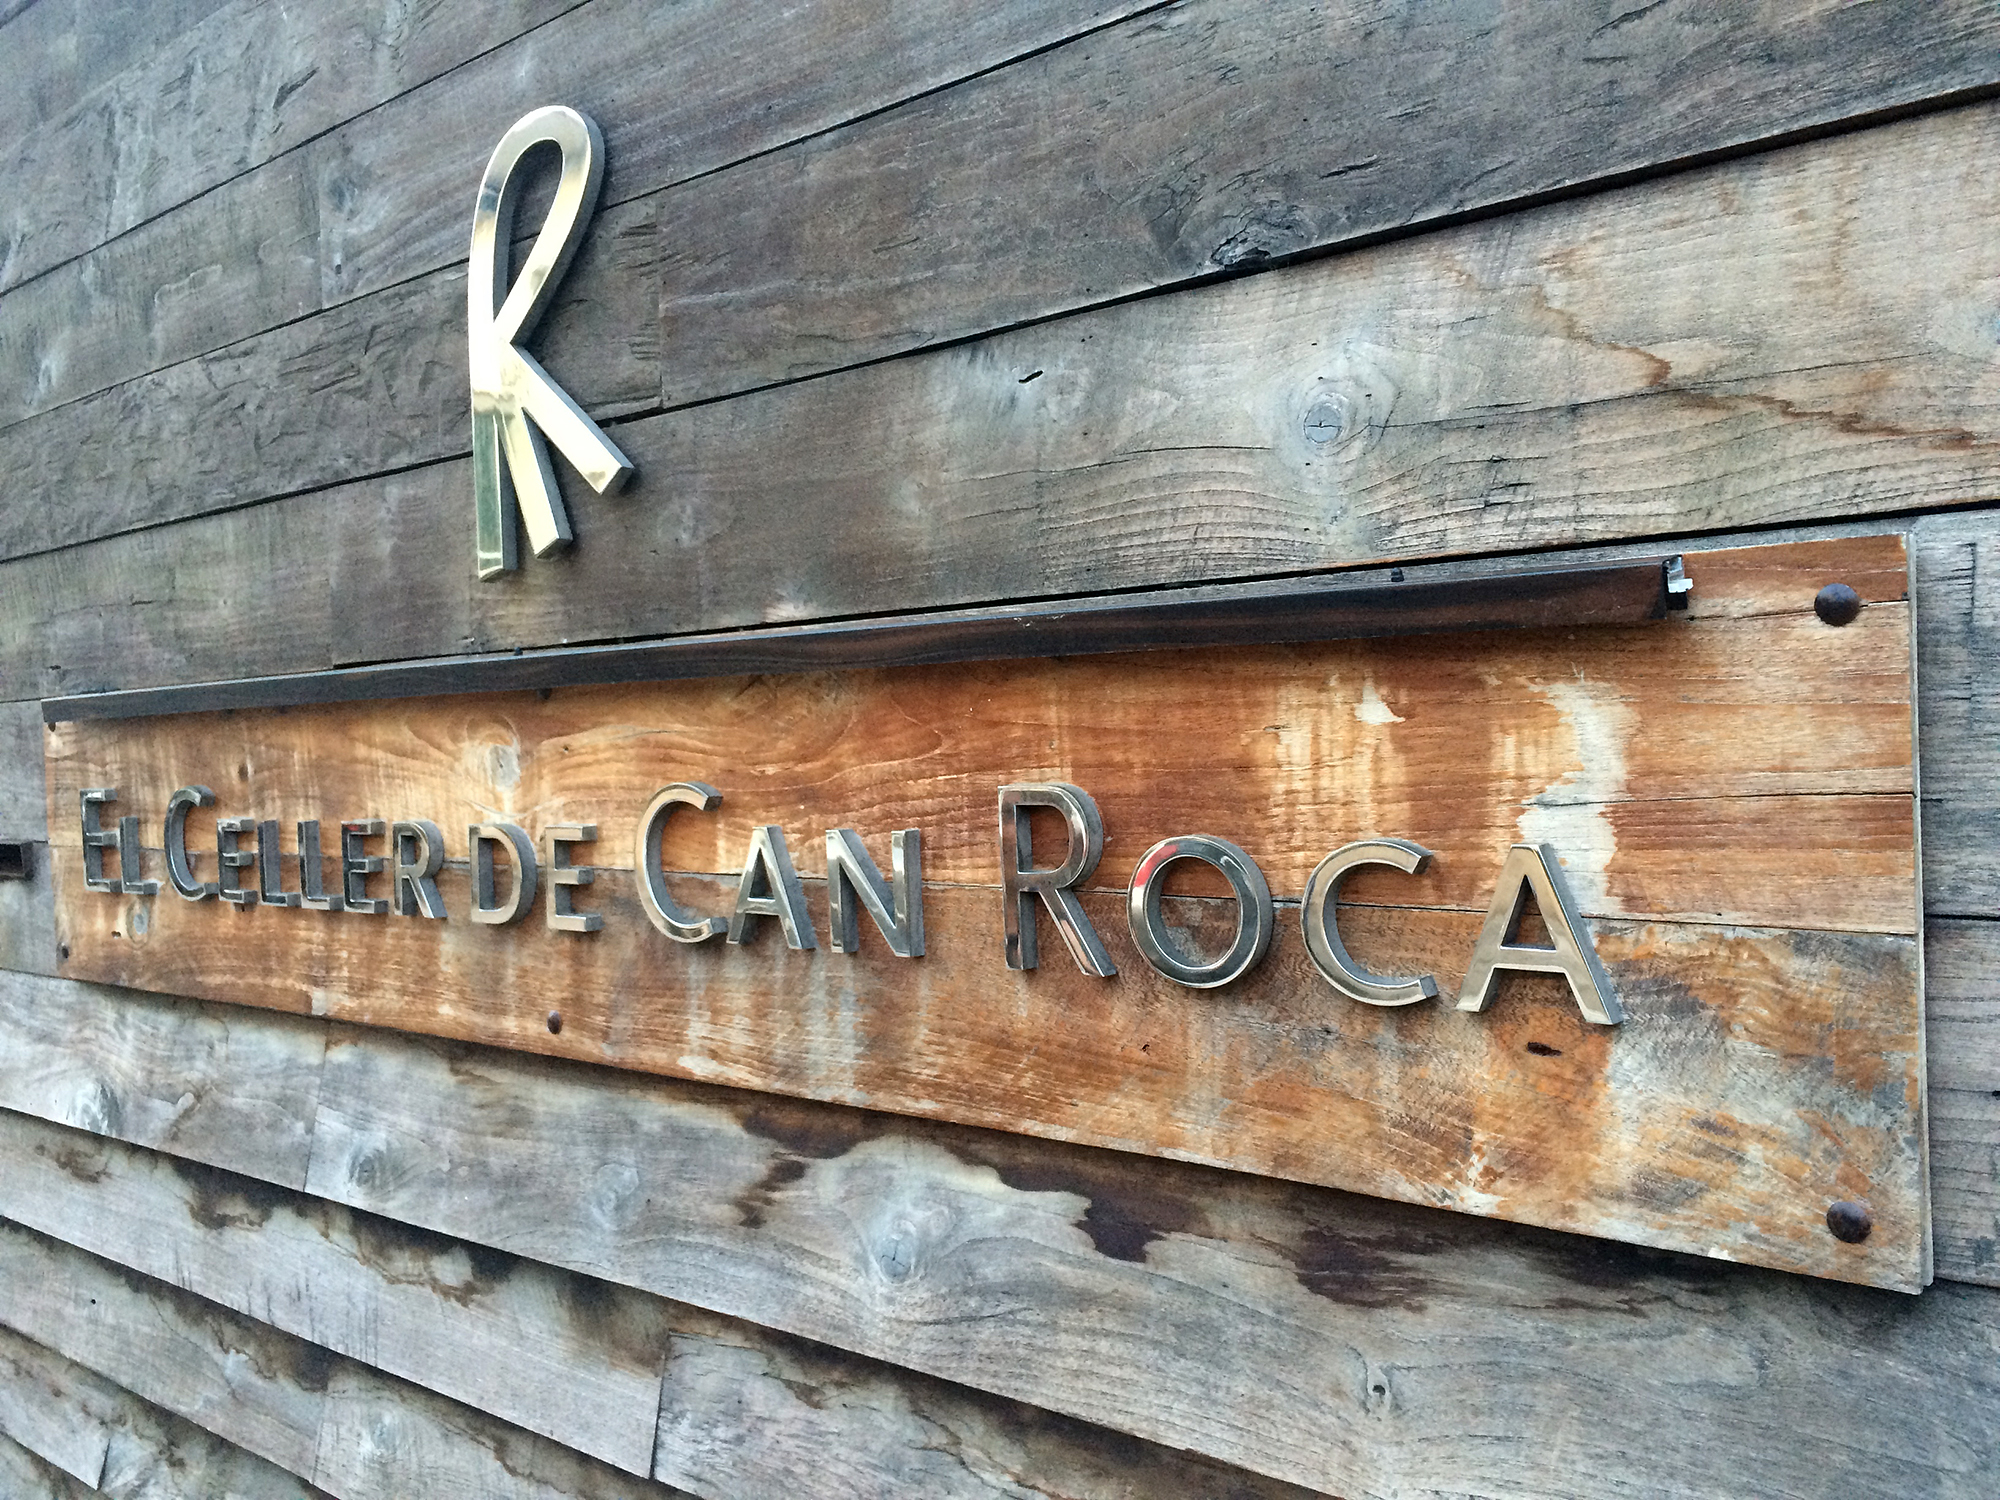 Restaruant El Celler De Can Rocca